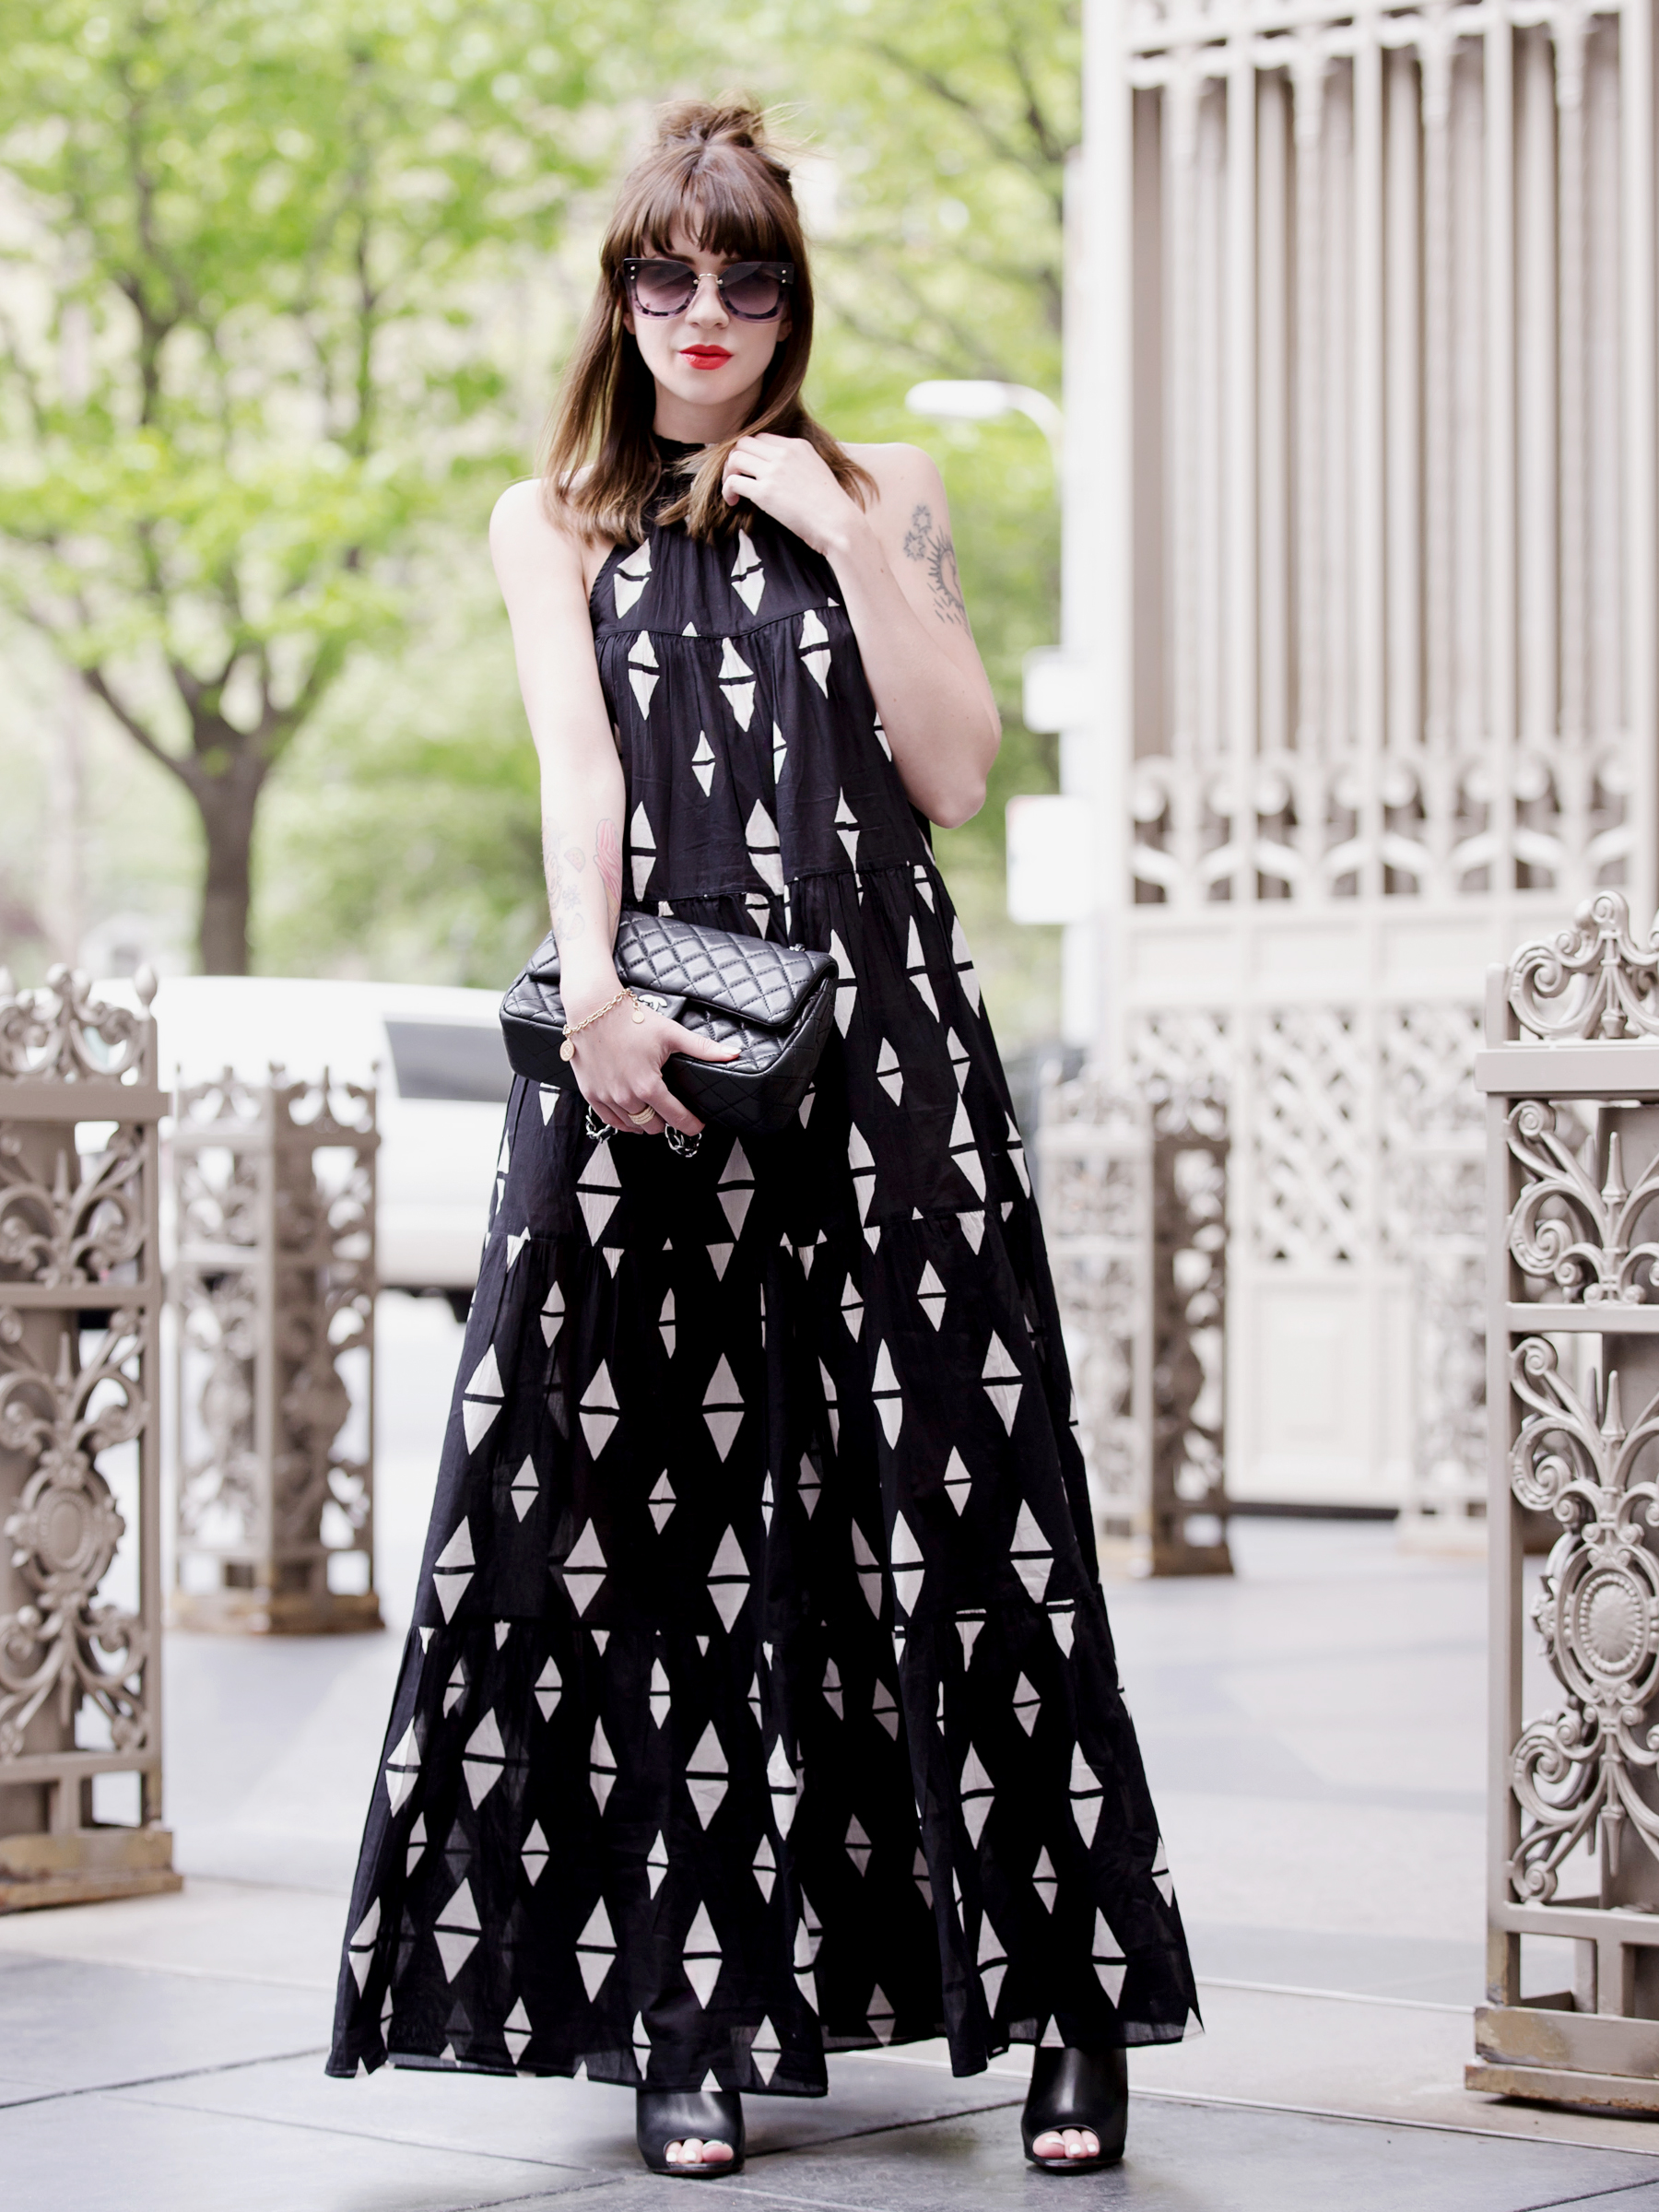 h&m maxi dress miu miu sunglasses chanel 2.55 double flap bag sacha heels ootd outfit styling fashionblogger modeblogger germany ricarda schernus cats & dogs styleblog 6